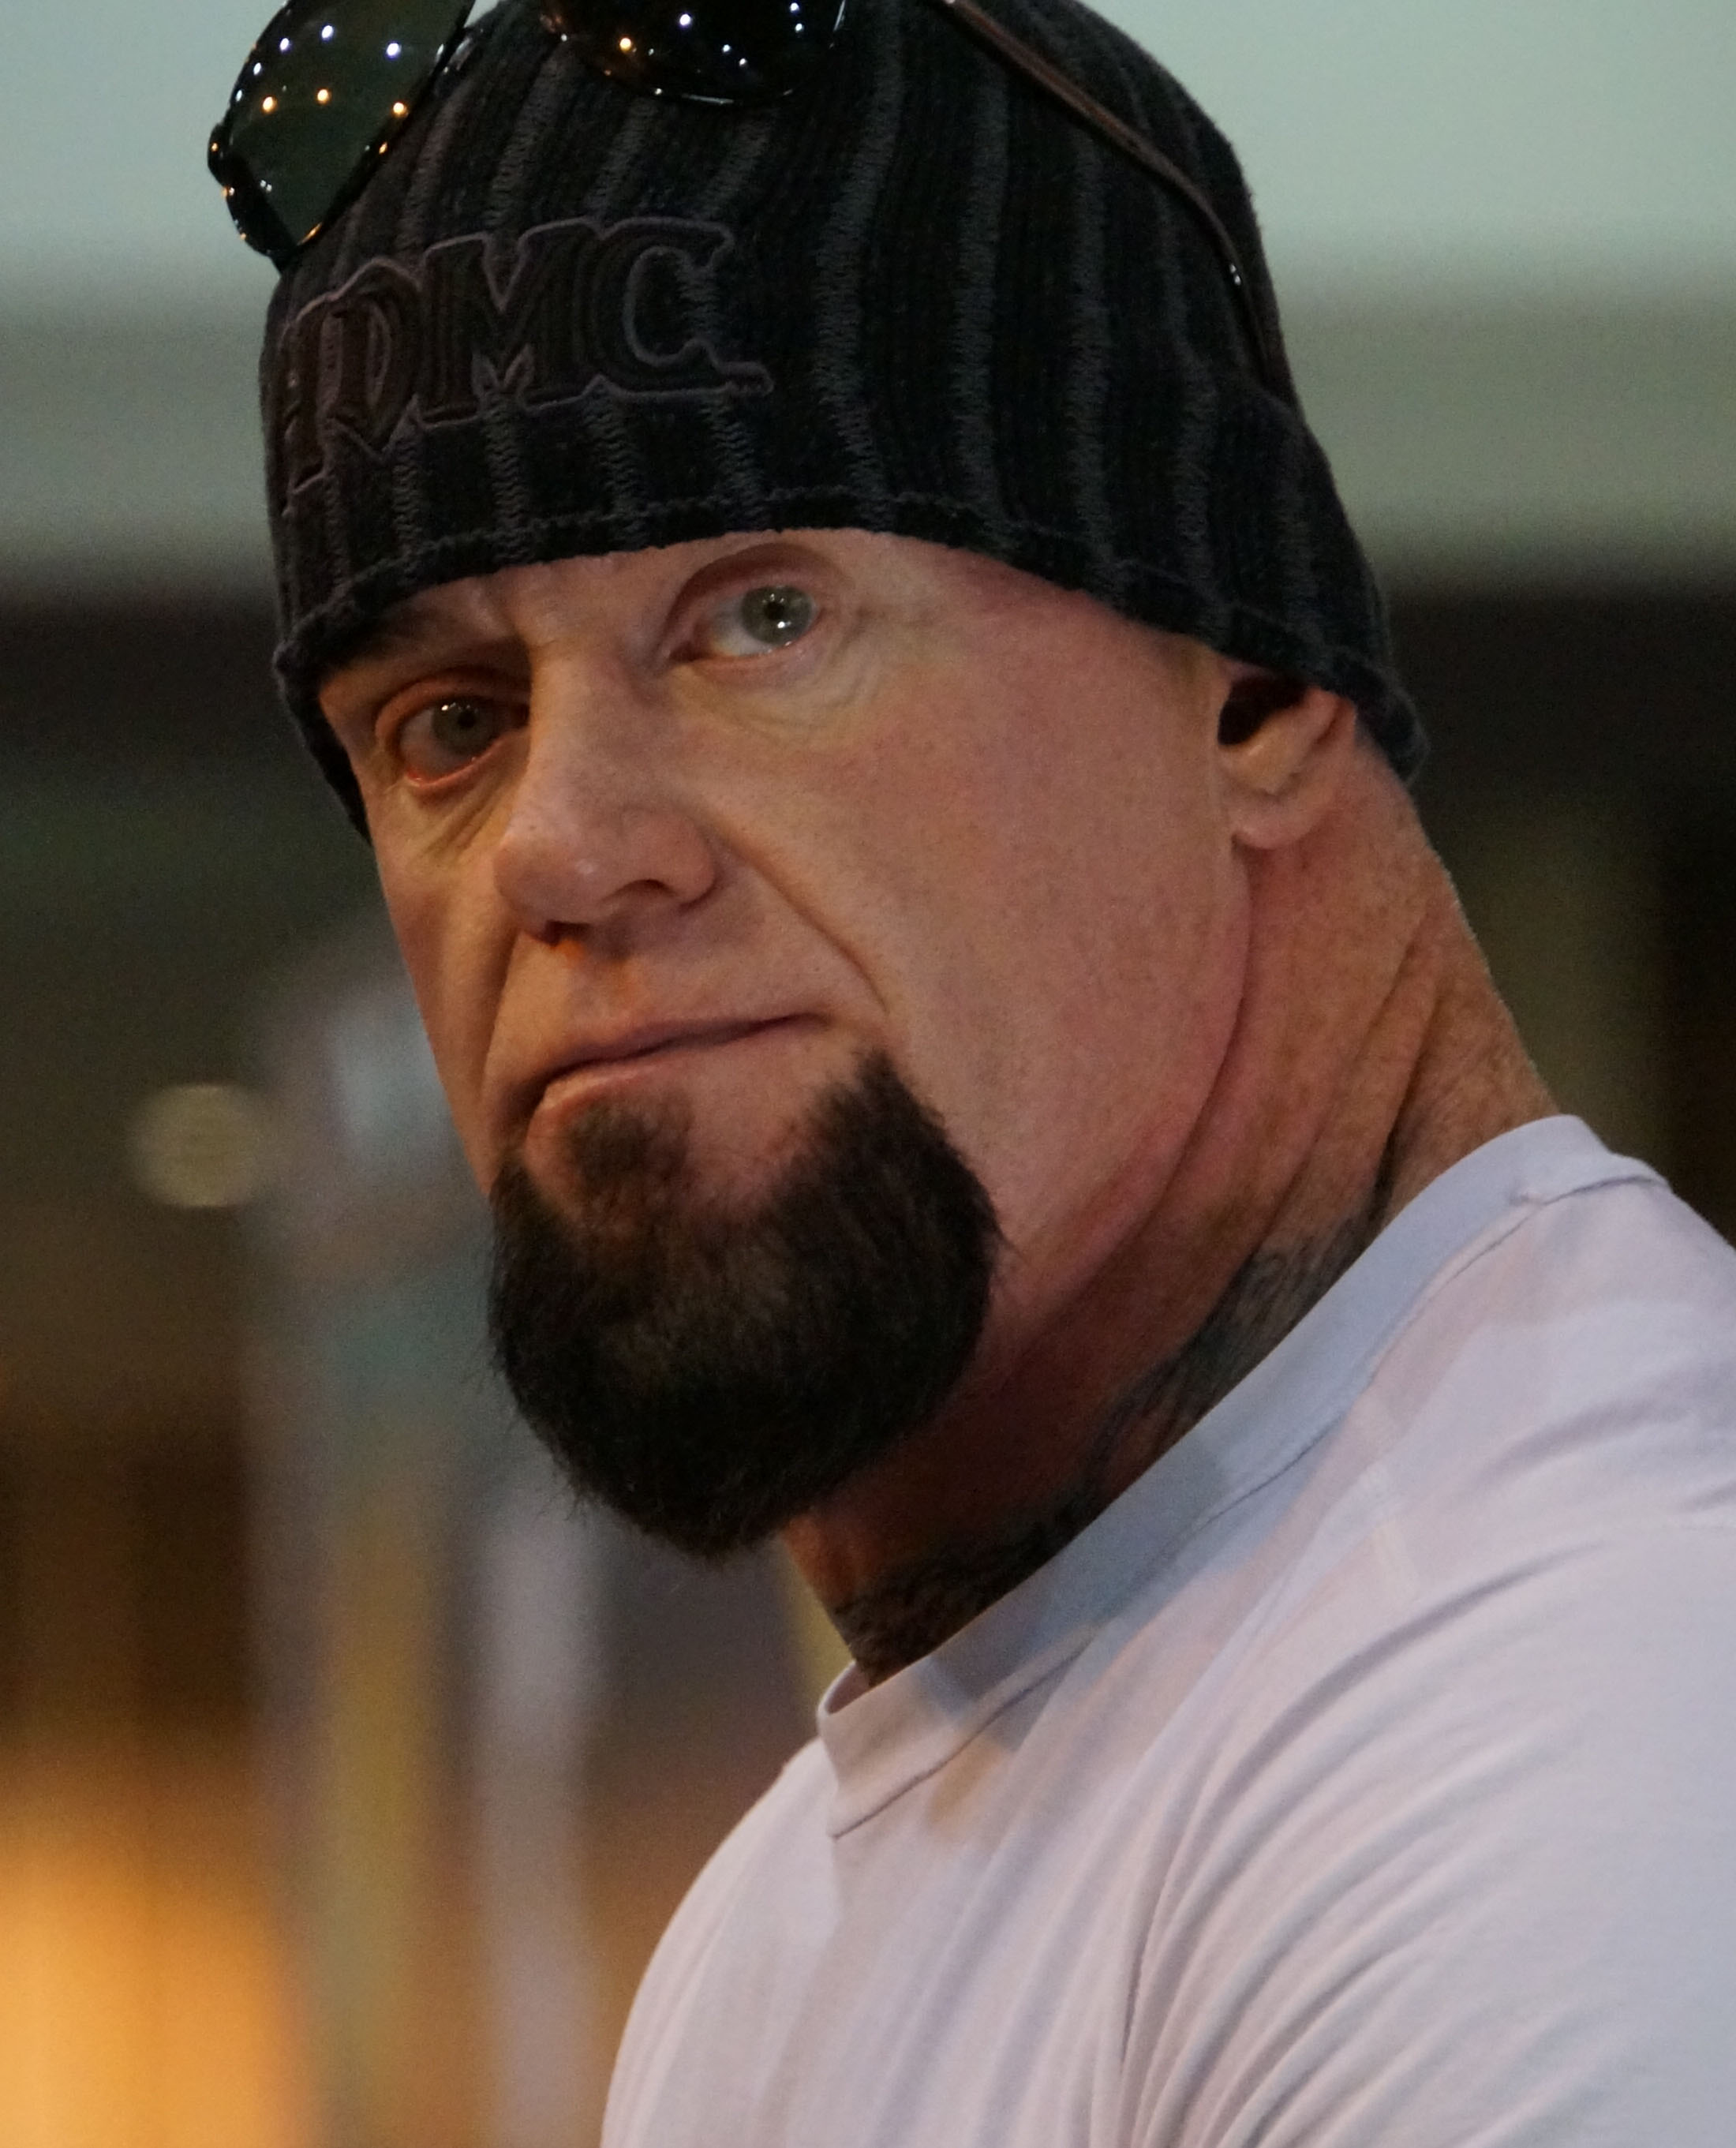 c45f2d510df The Undertaker - Wikipedia